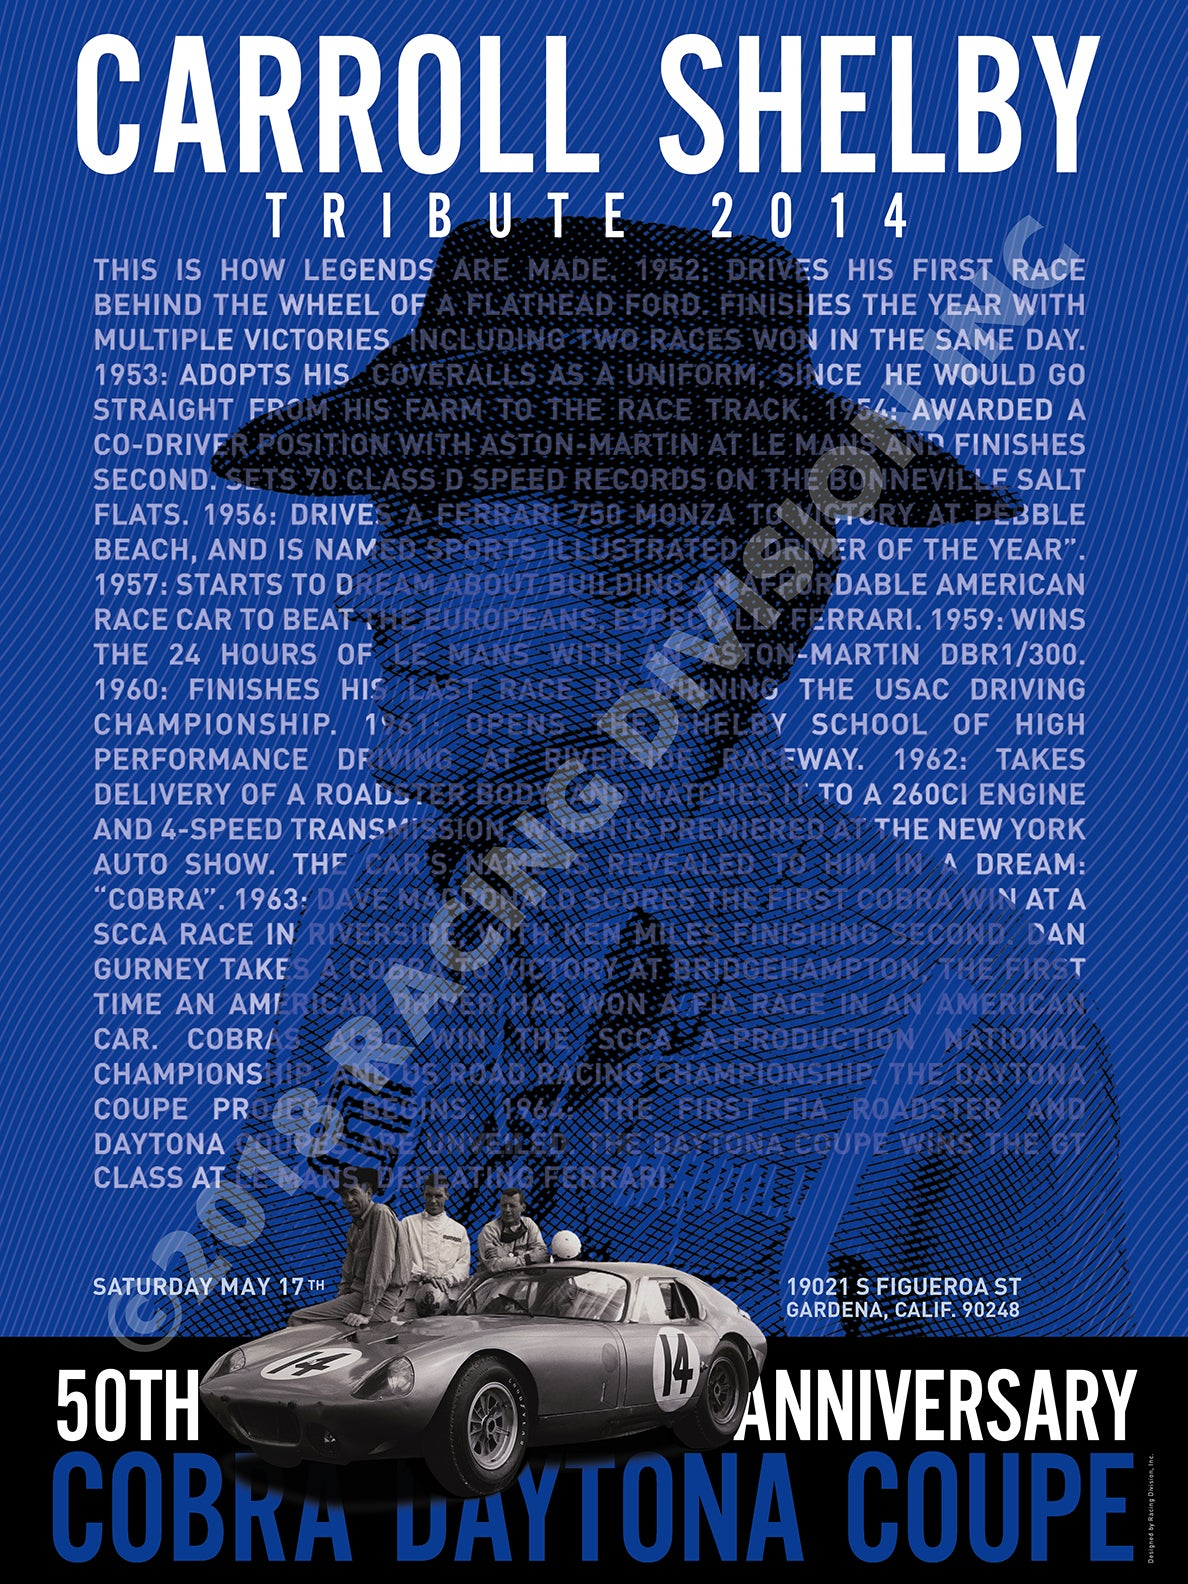 Image of 2014 CARROLL SHELBY TRIBUTE POSTER